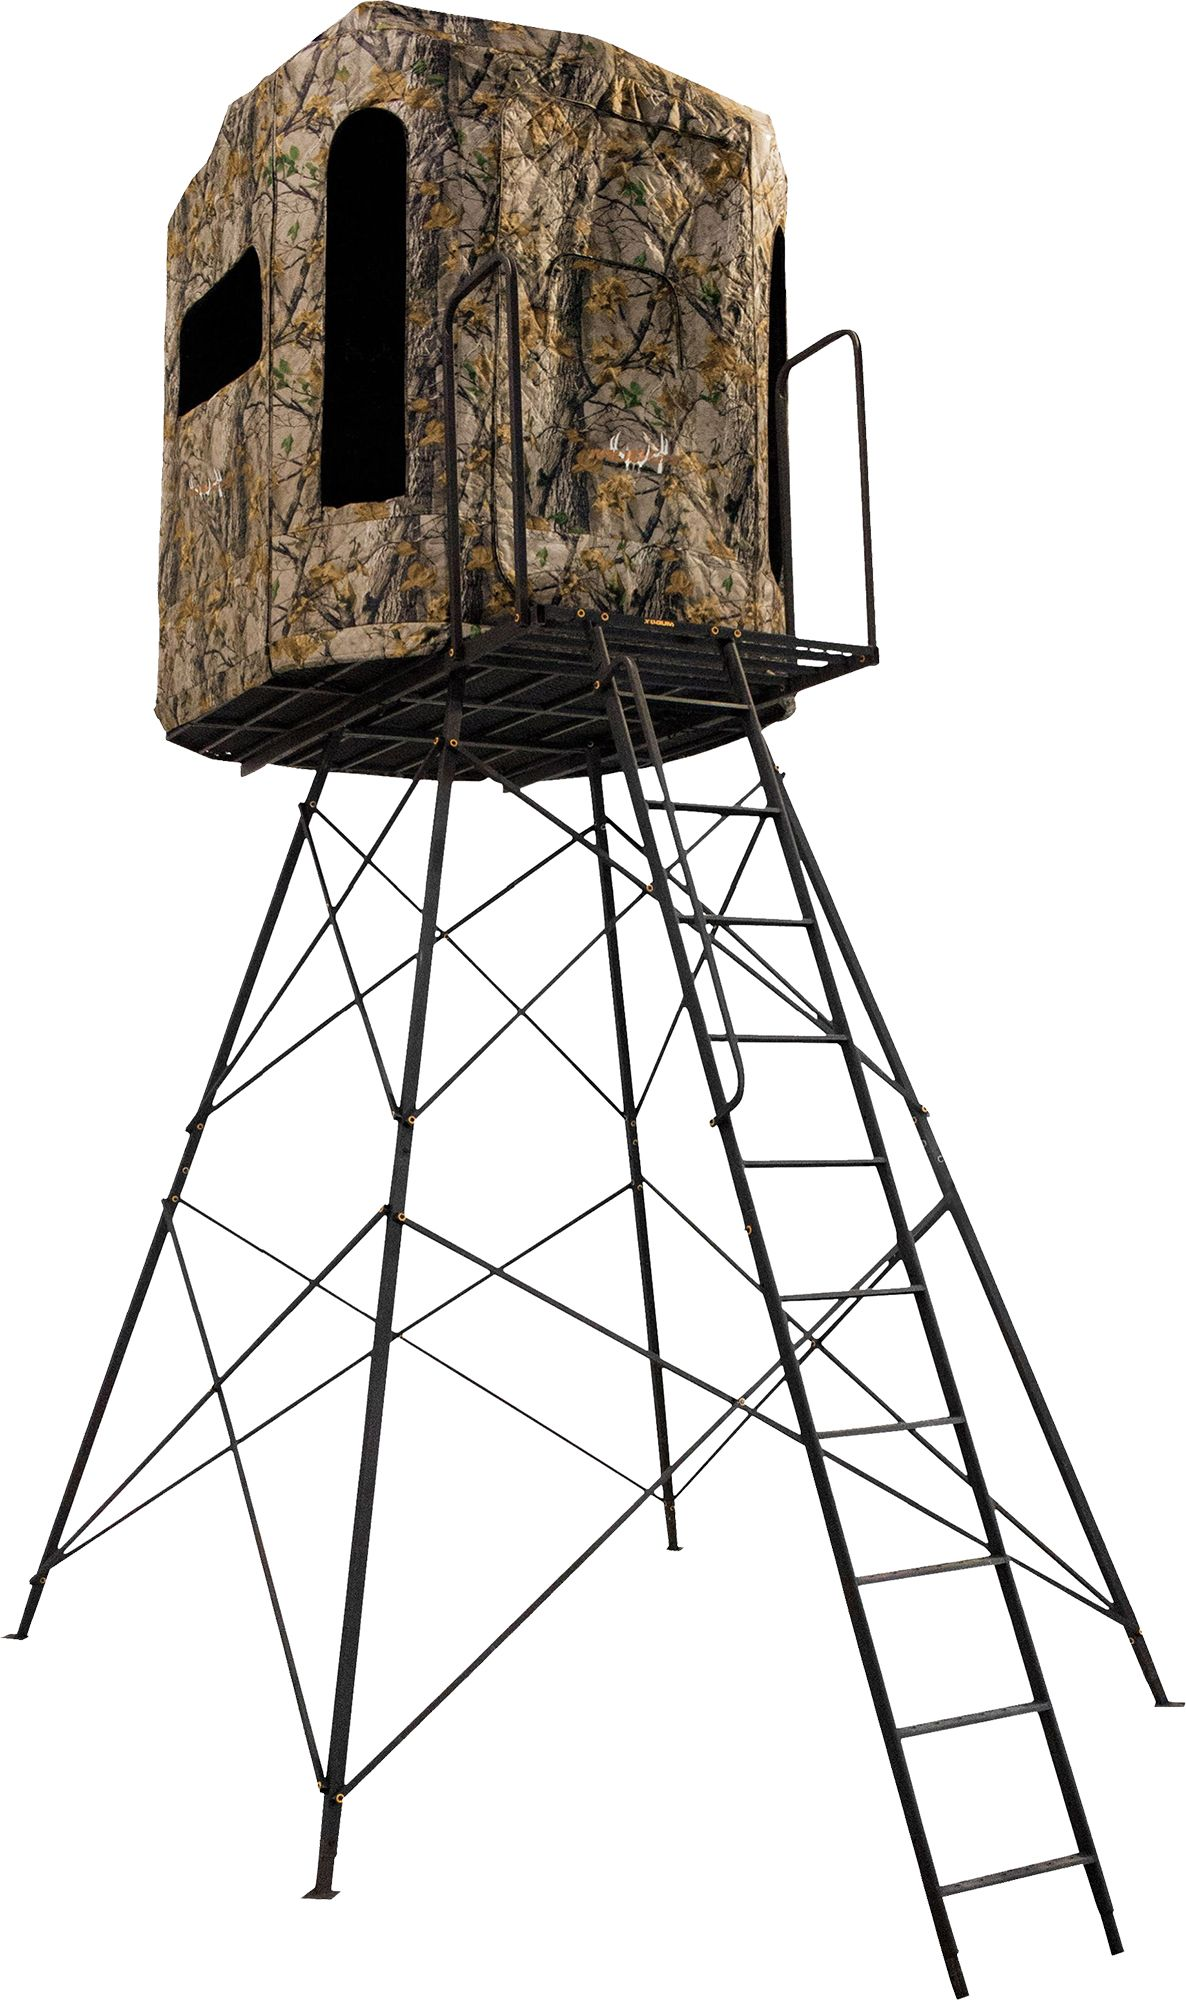 Muddy The Soft Side 360 Blind with Deluxe 10′ Tower, steel